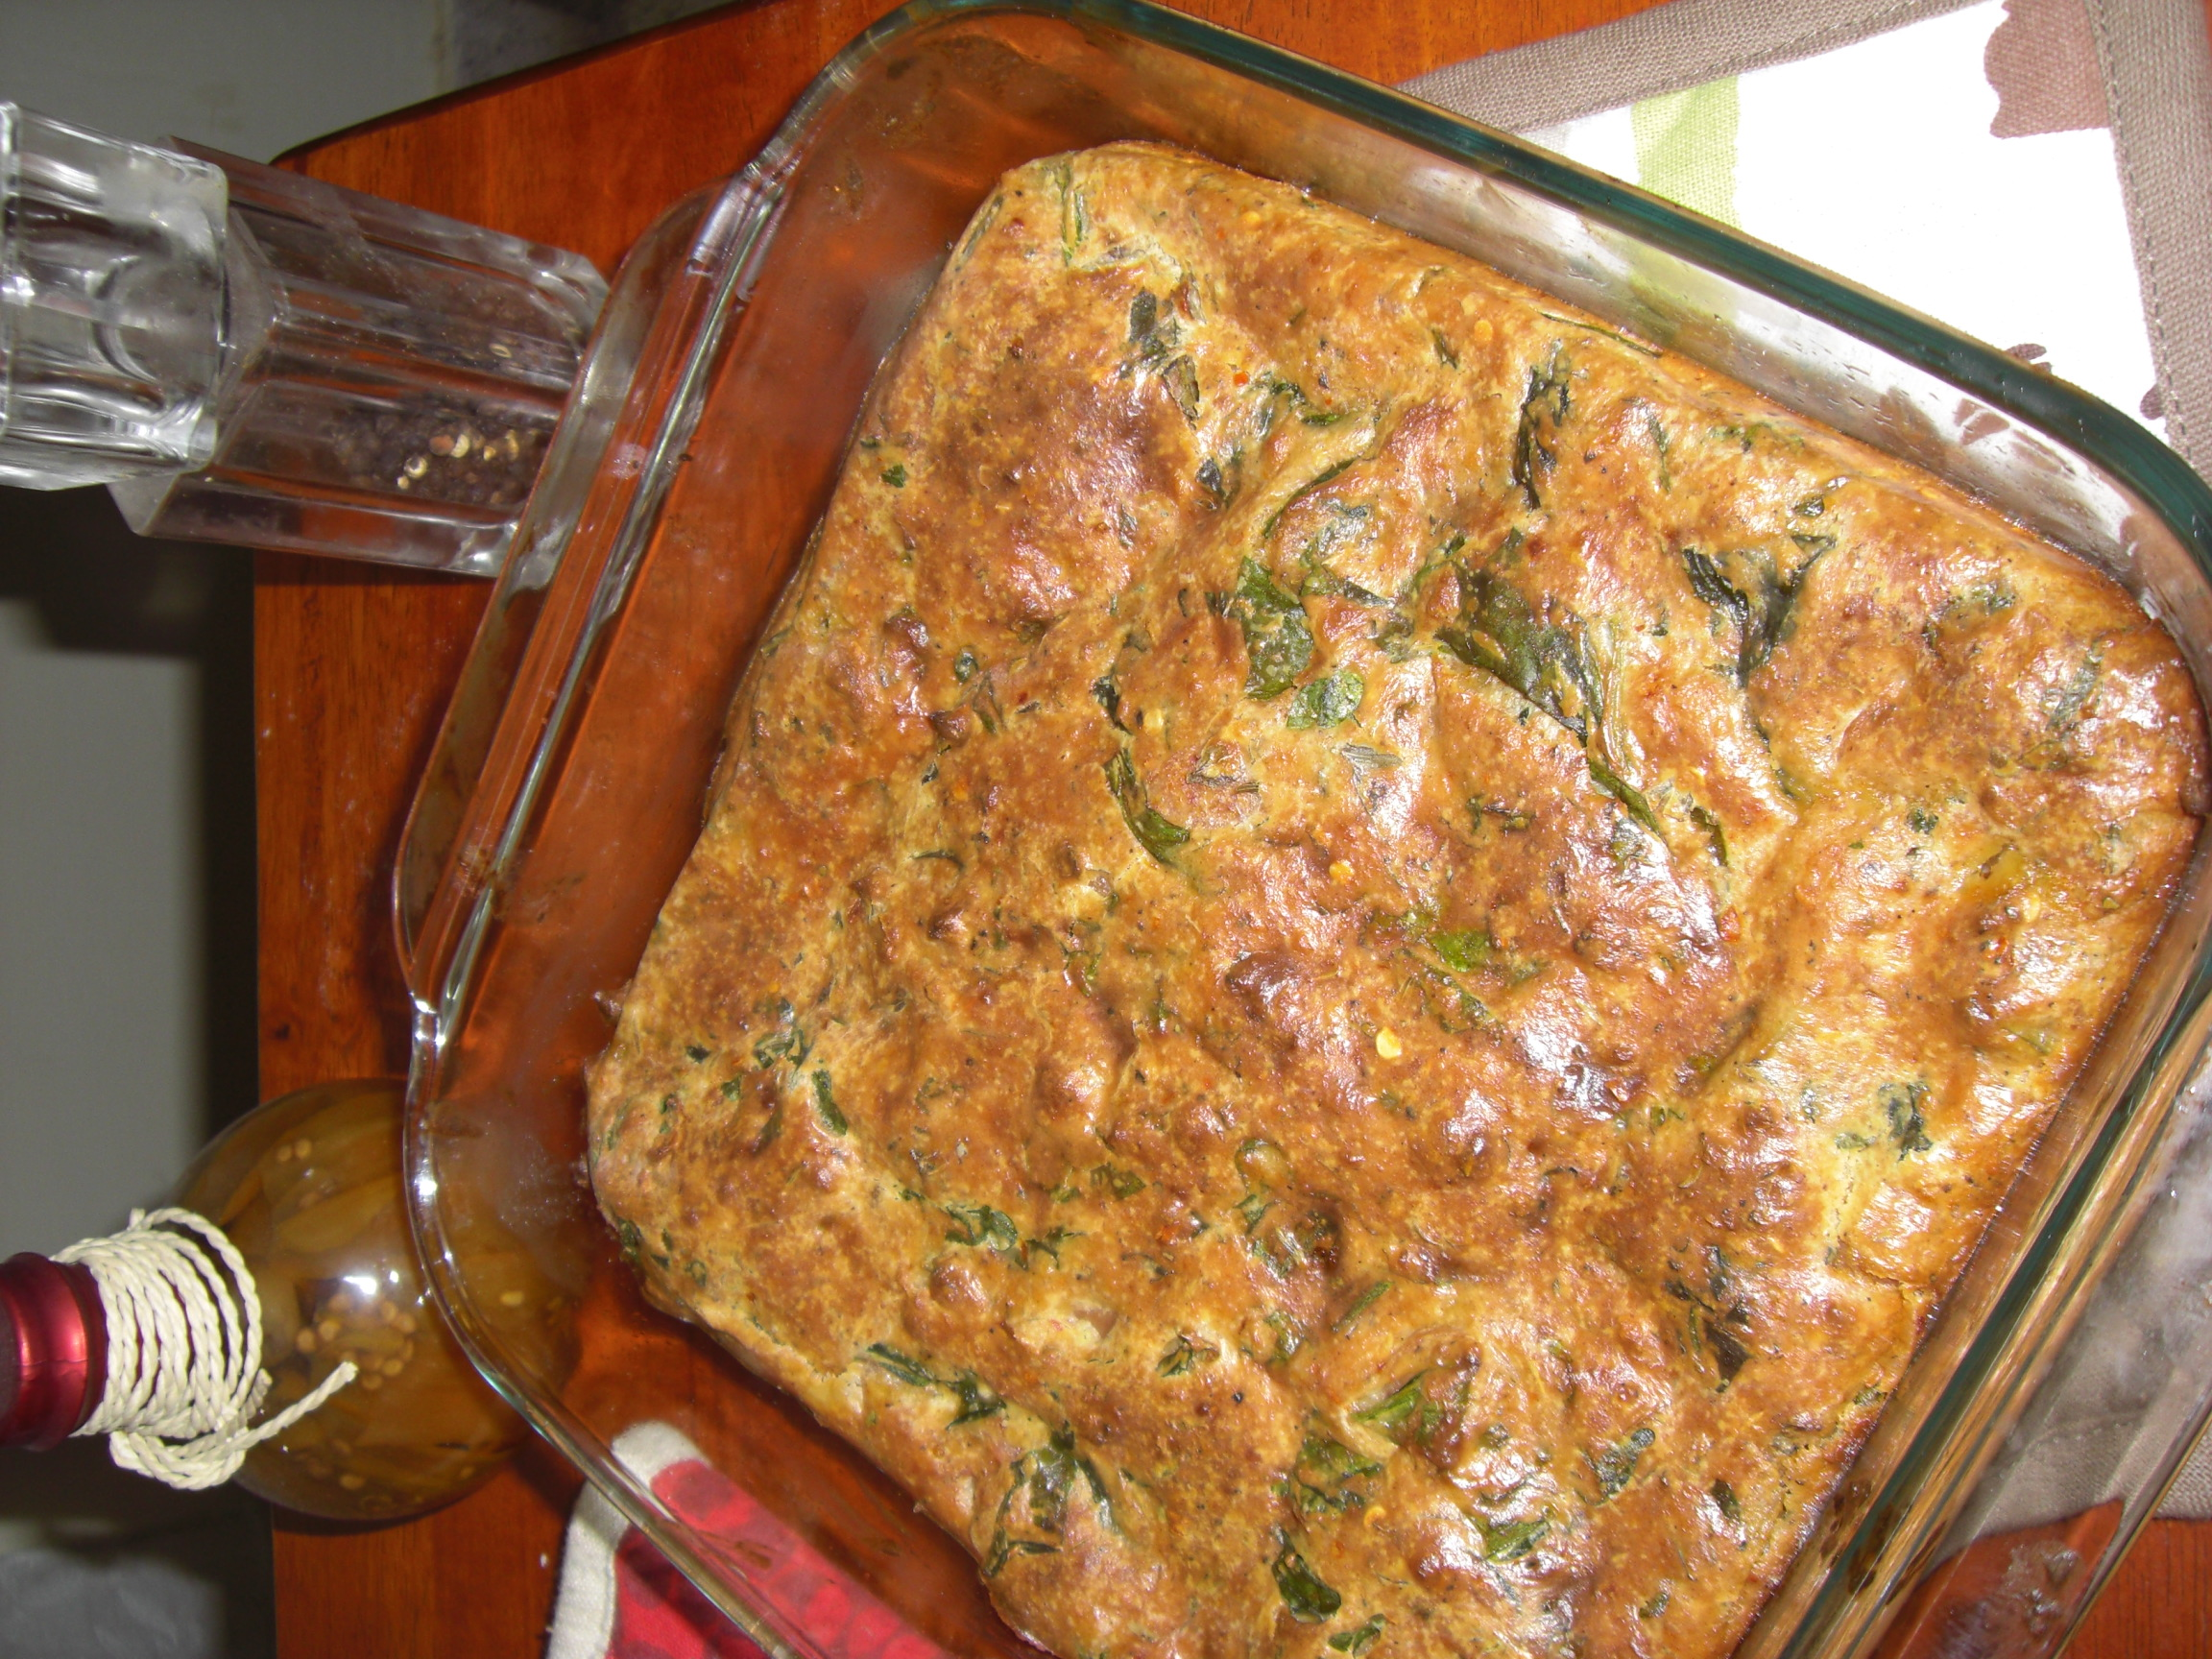 Spinach, Sausage and Cheese Bake